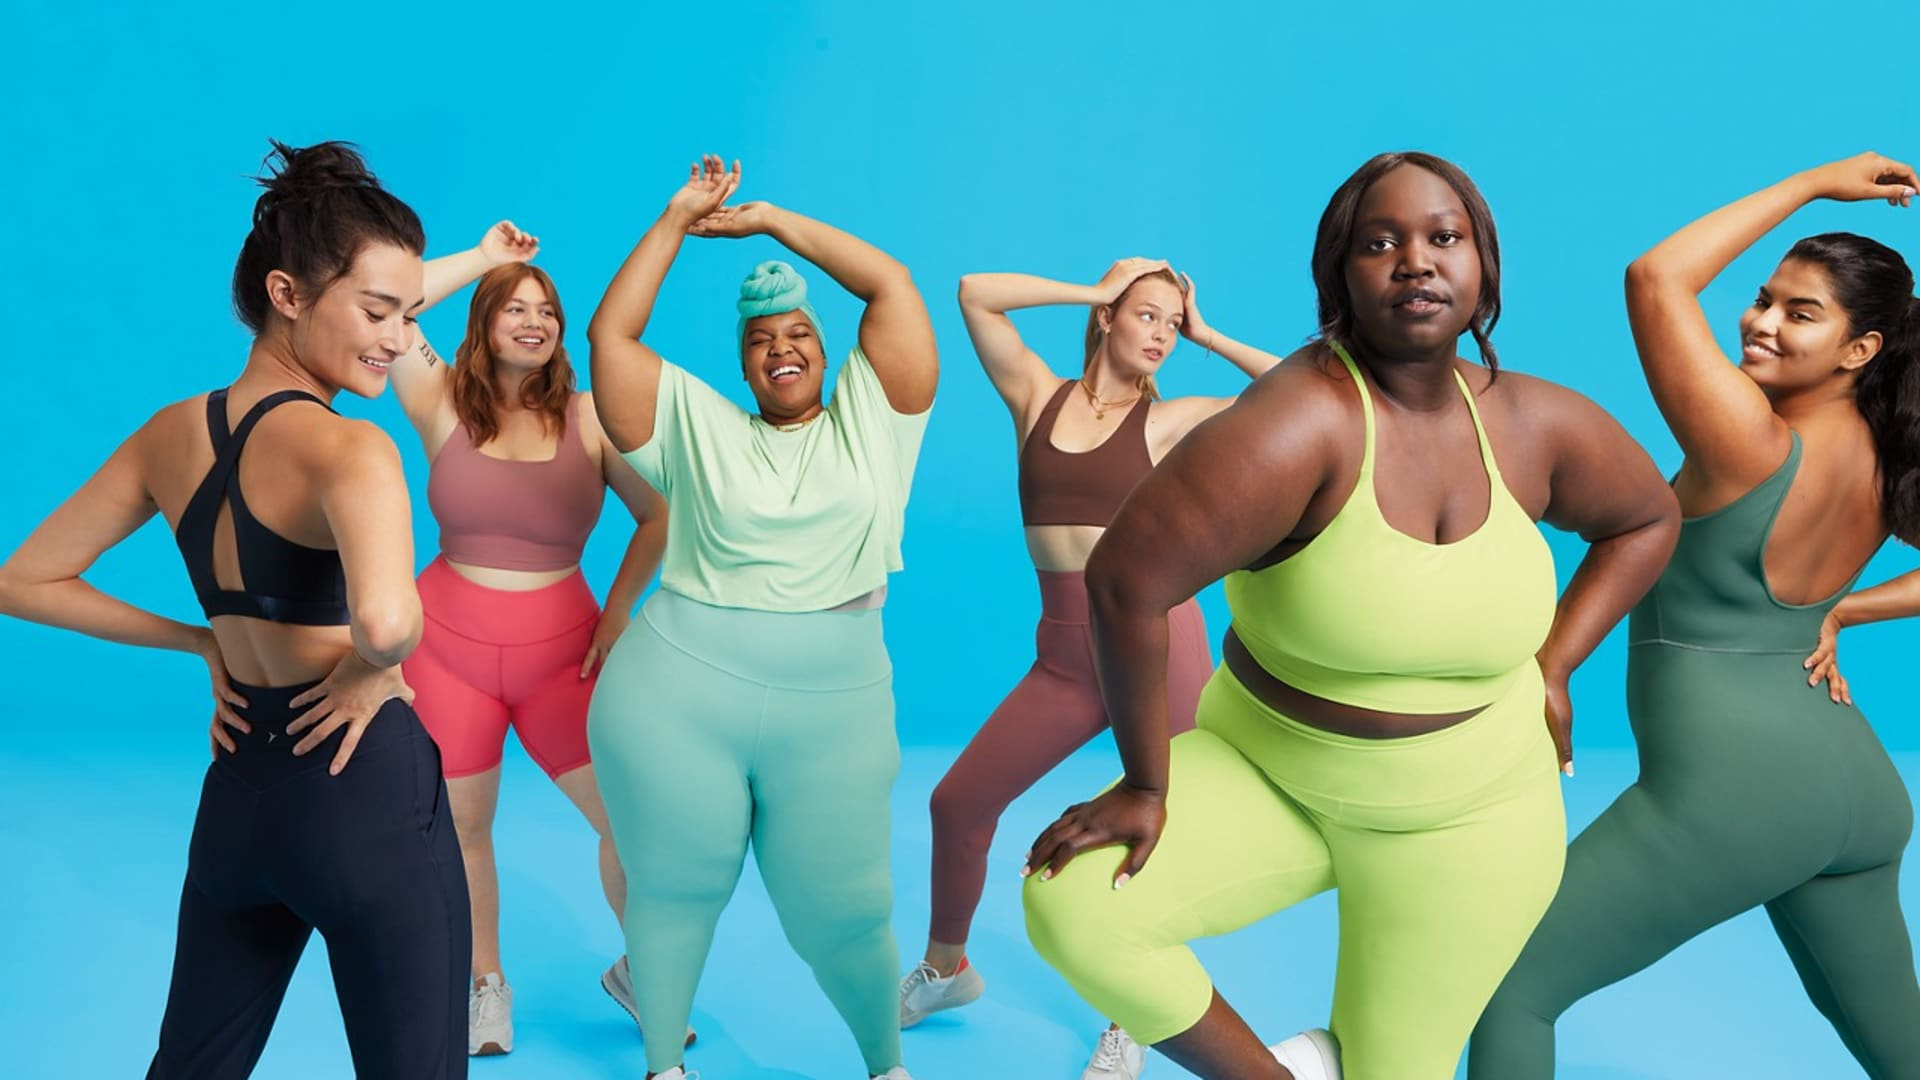 Beginning in late August, Old Navy offer sizes 0-28 and XS-4X for all women's styles in its stores, and up to size 30 online.